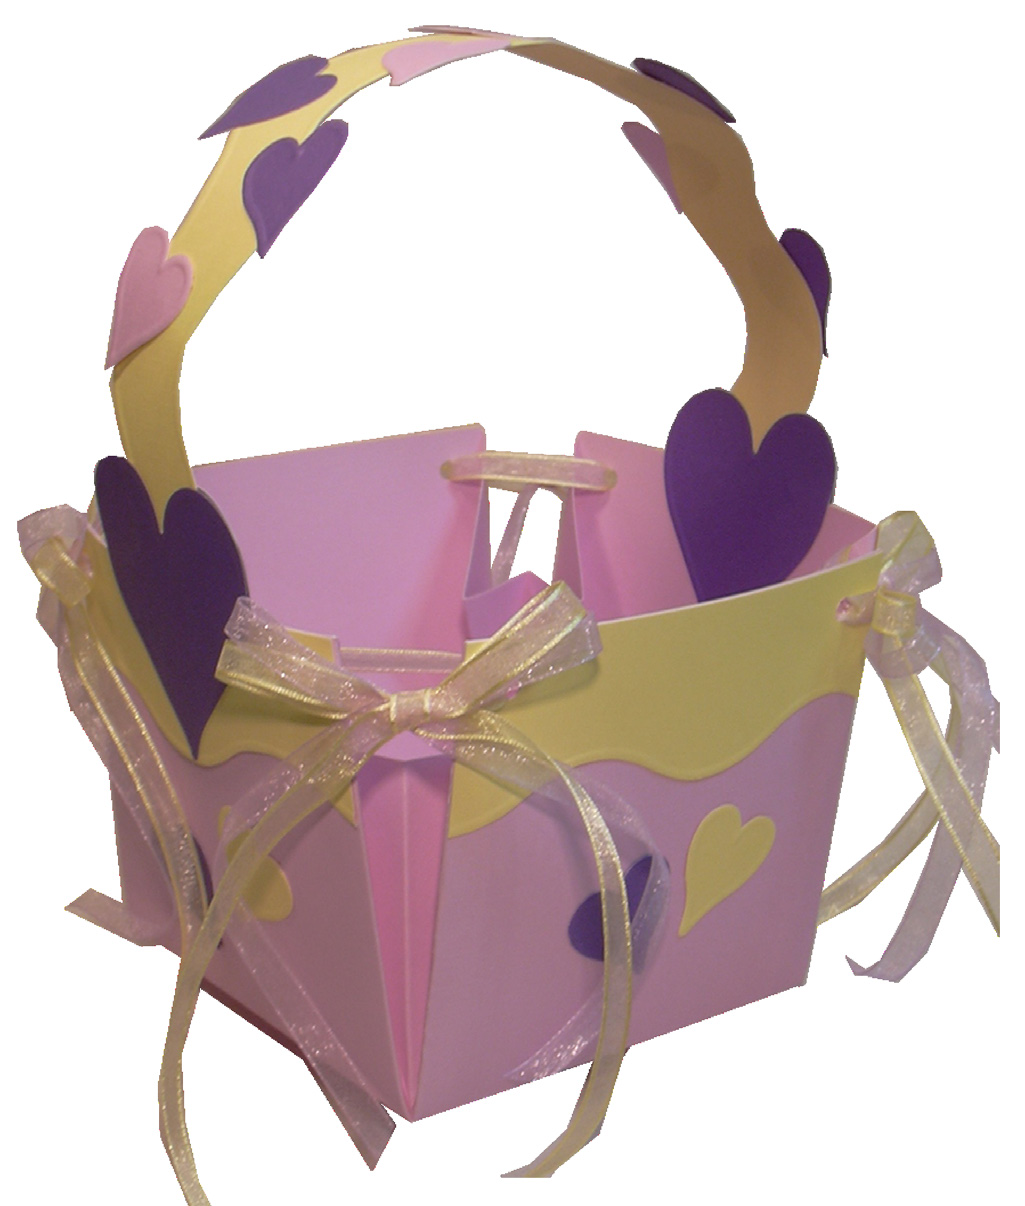 Lilac and Lemon Cardstock Easter Basket FaveCraftscom tCM39O8E